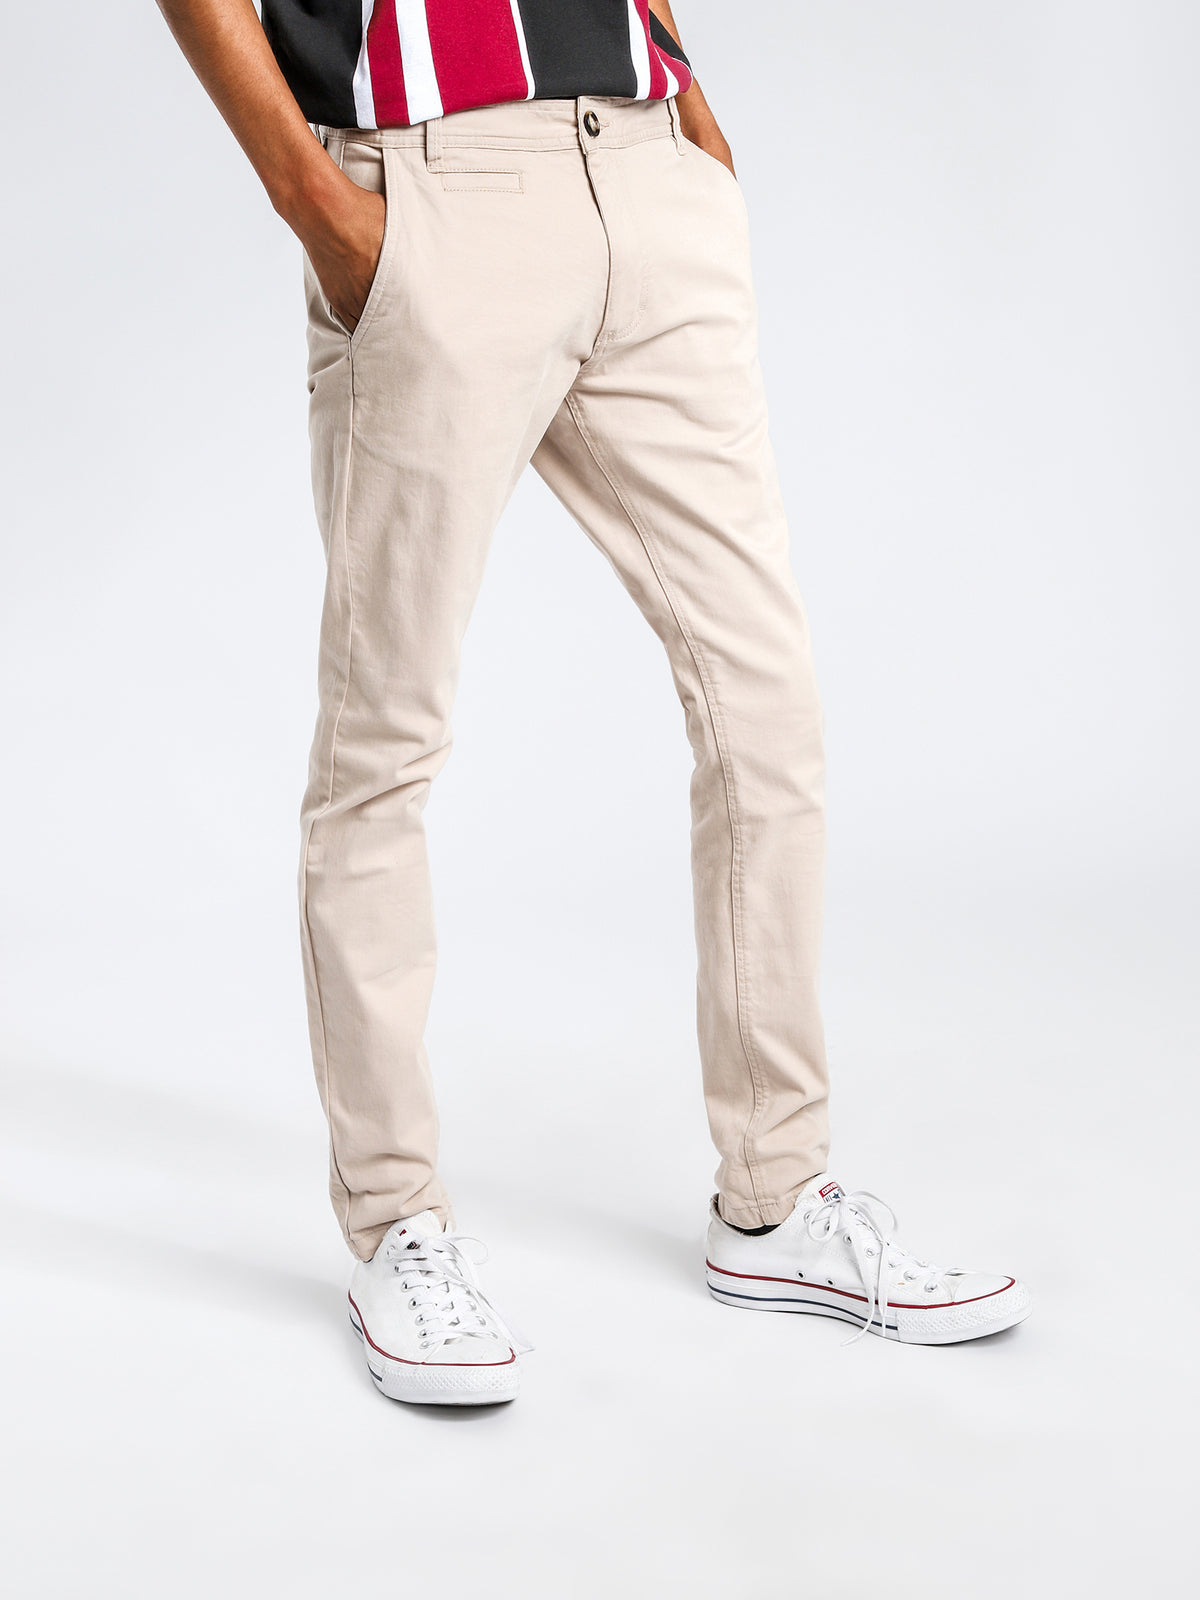 Linden Chino Pants in Stone